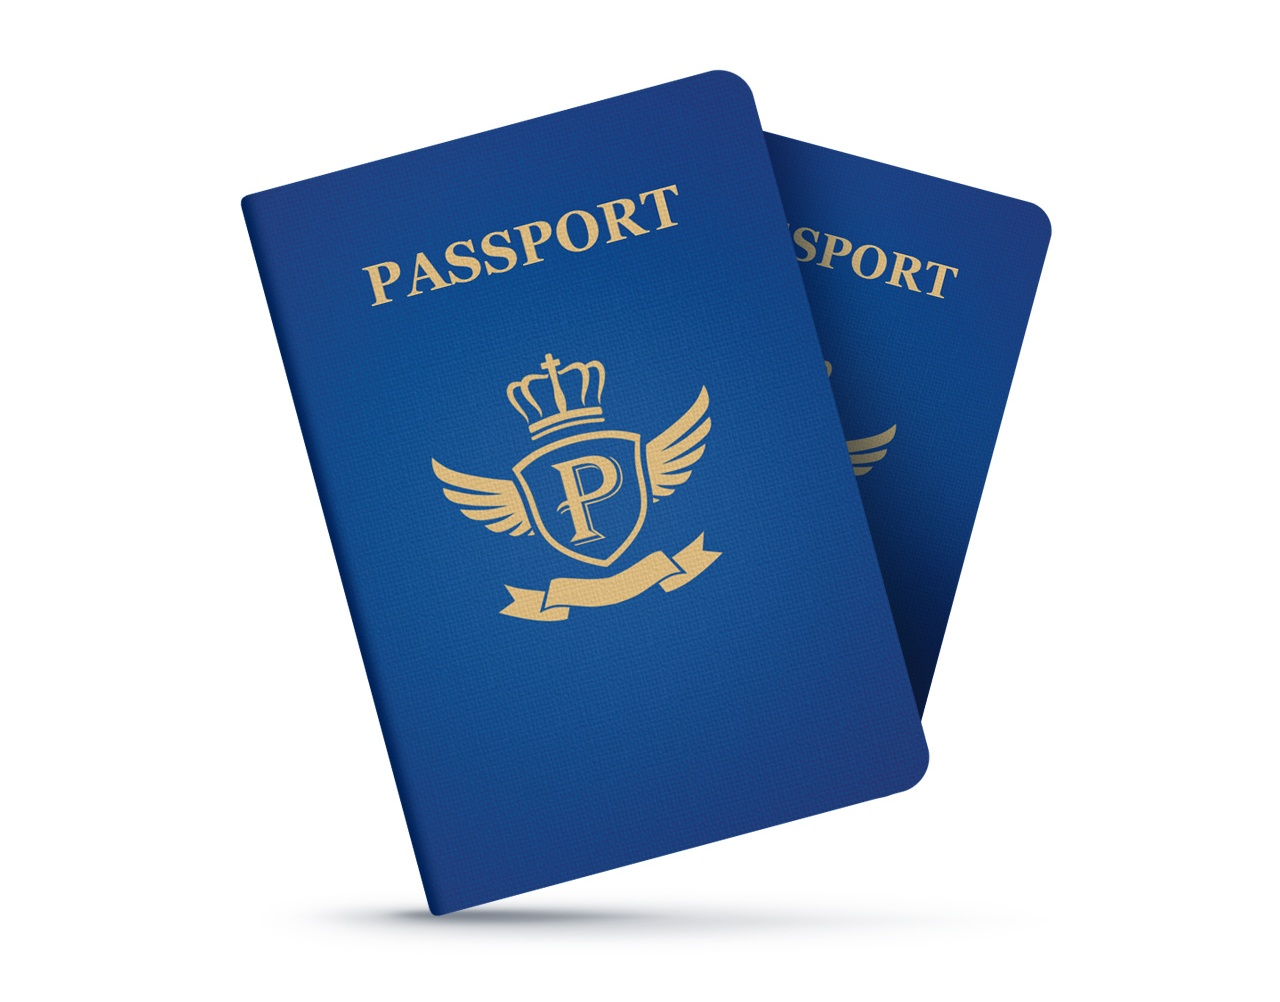 Panda free images info. Passport clipart clipart library library